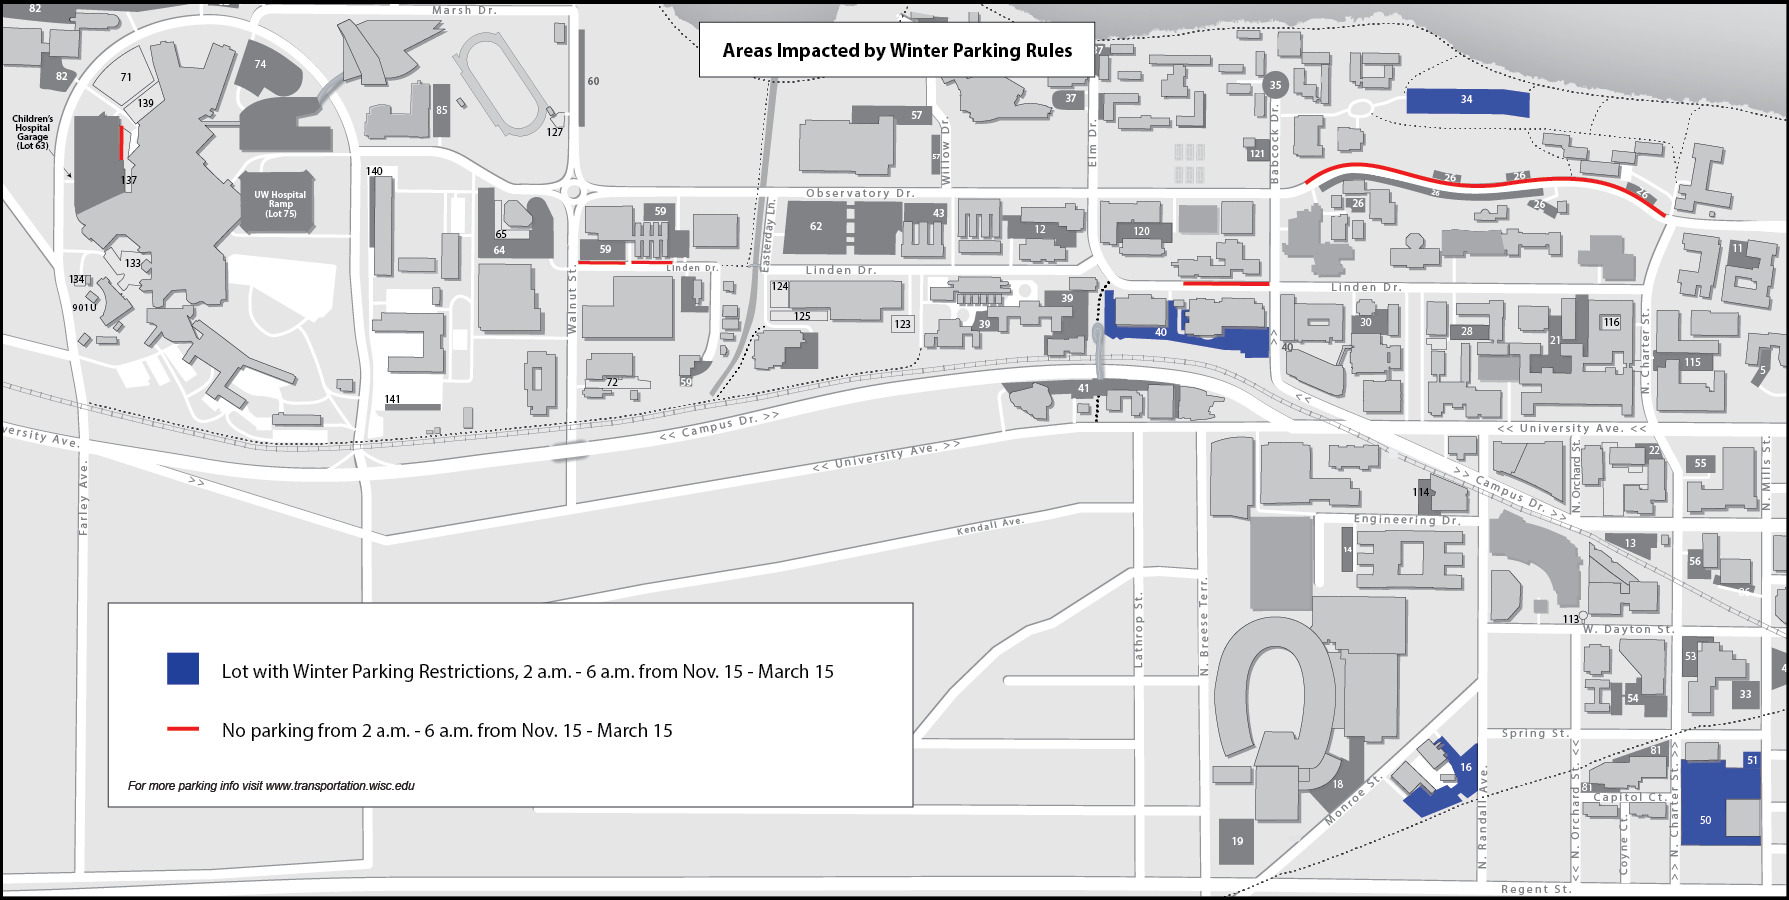 Areas of no parking or parking restrictions from Nov. 15 - March 15 are marked.